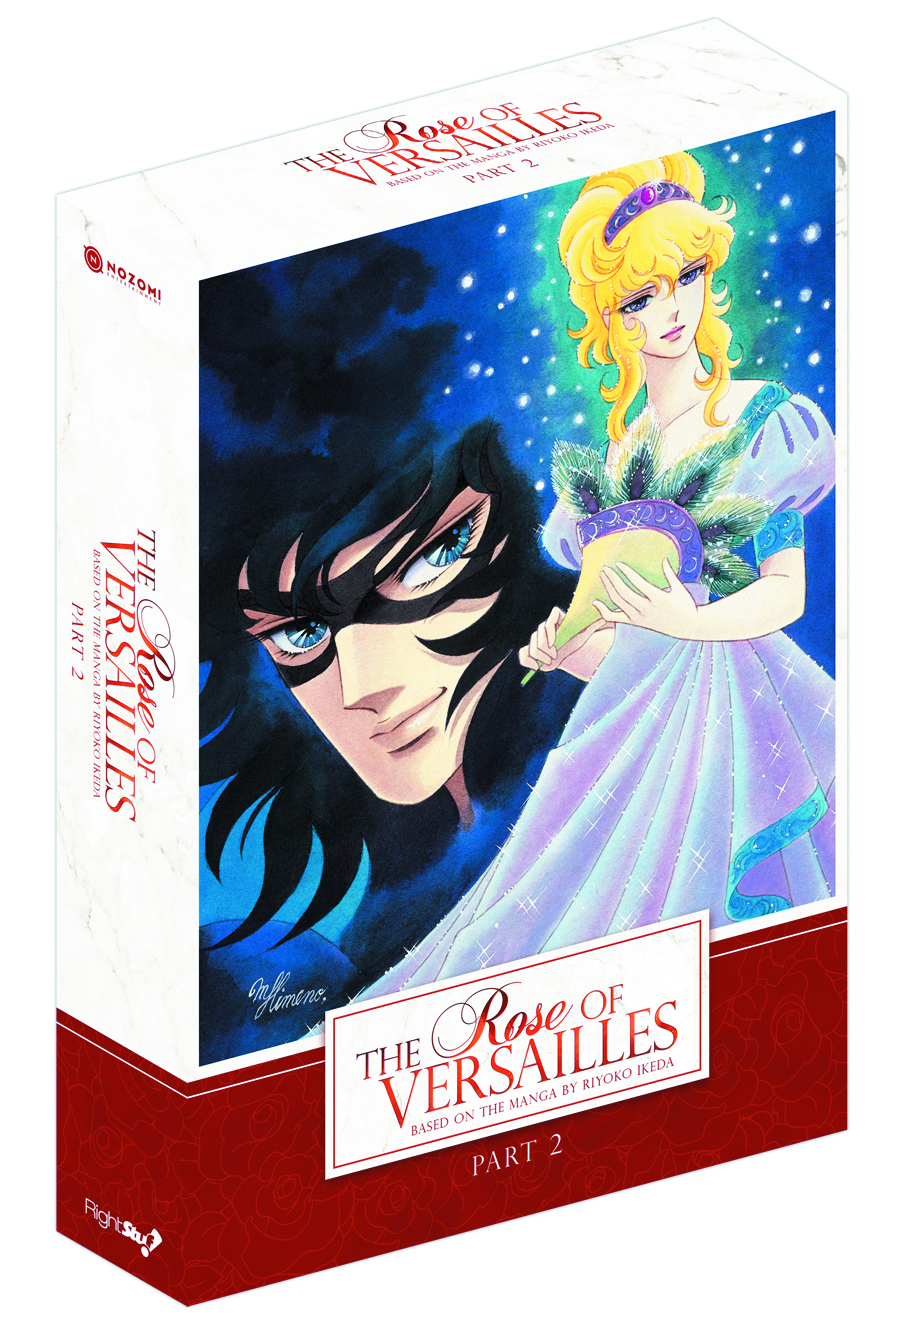 ROSE OF VERSAILLES DVD PT 02